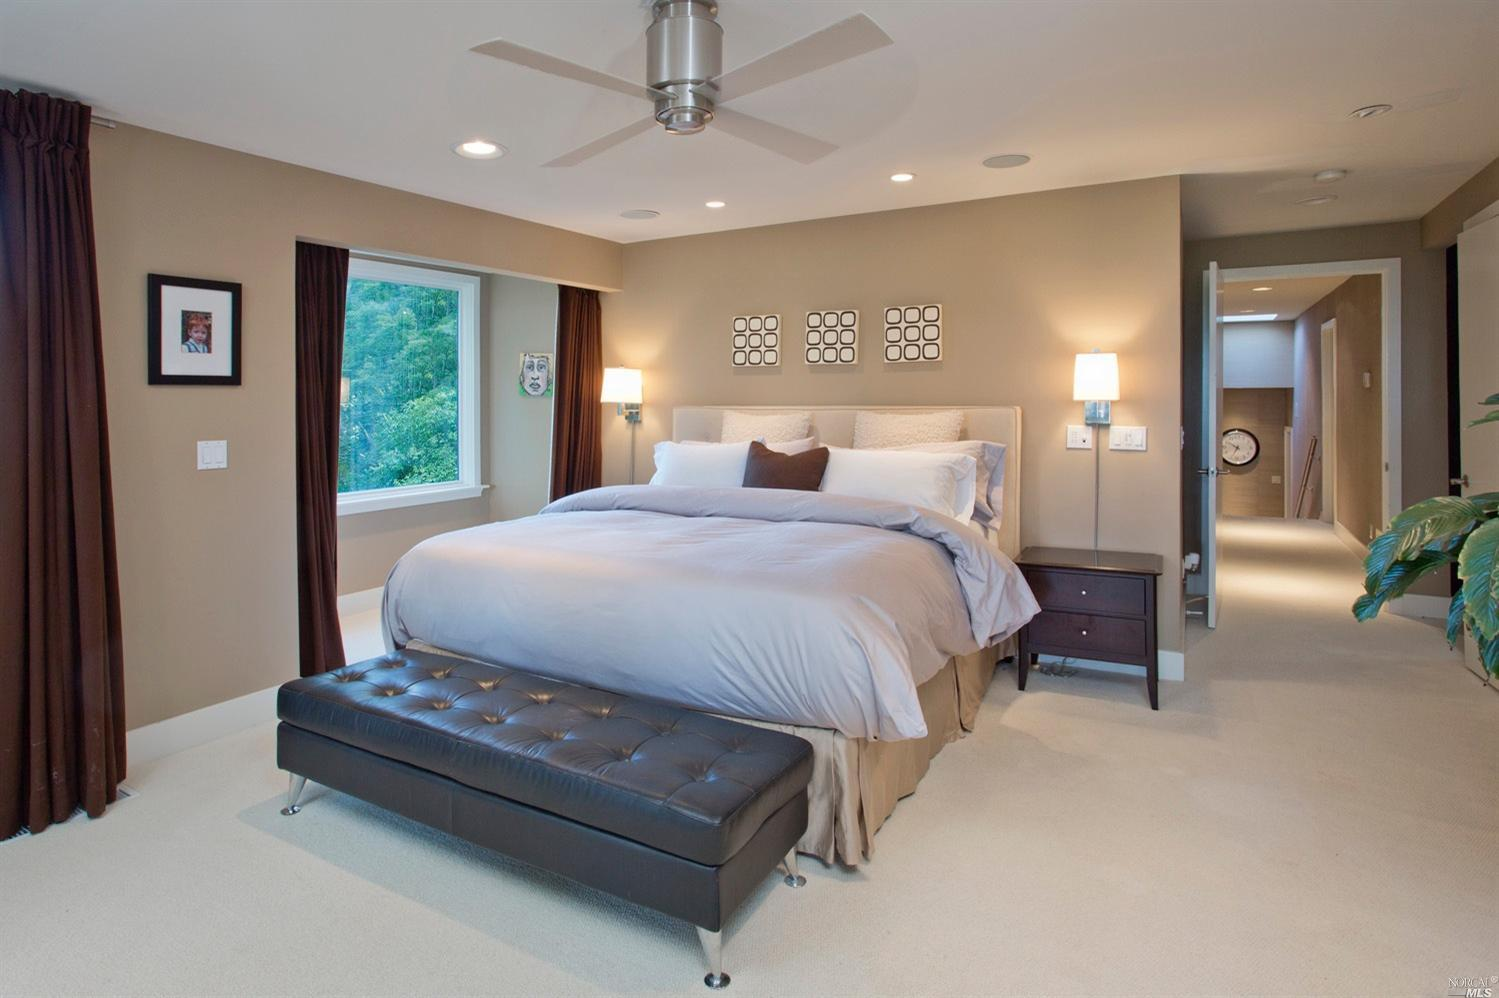 Mid century modern estate makes a statement in santa rosa - Mid century modern master bedroom ...